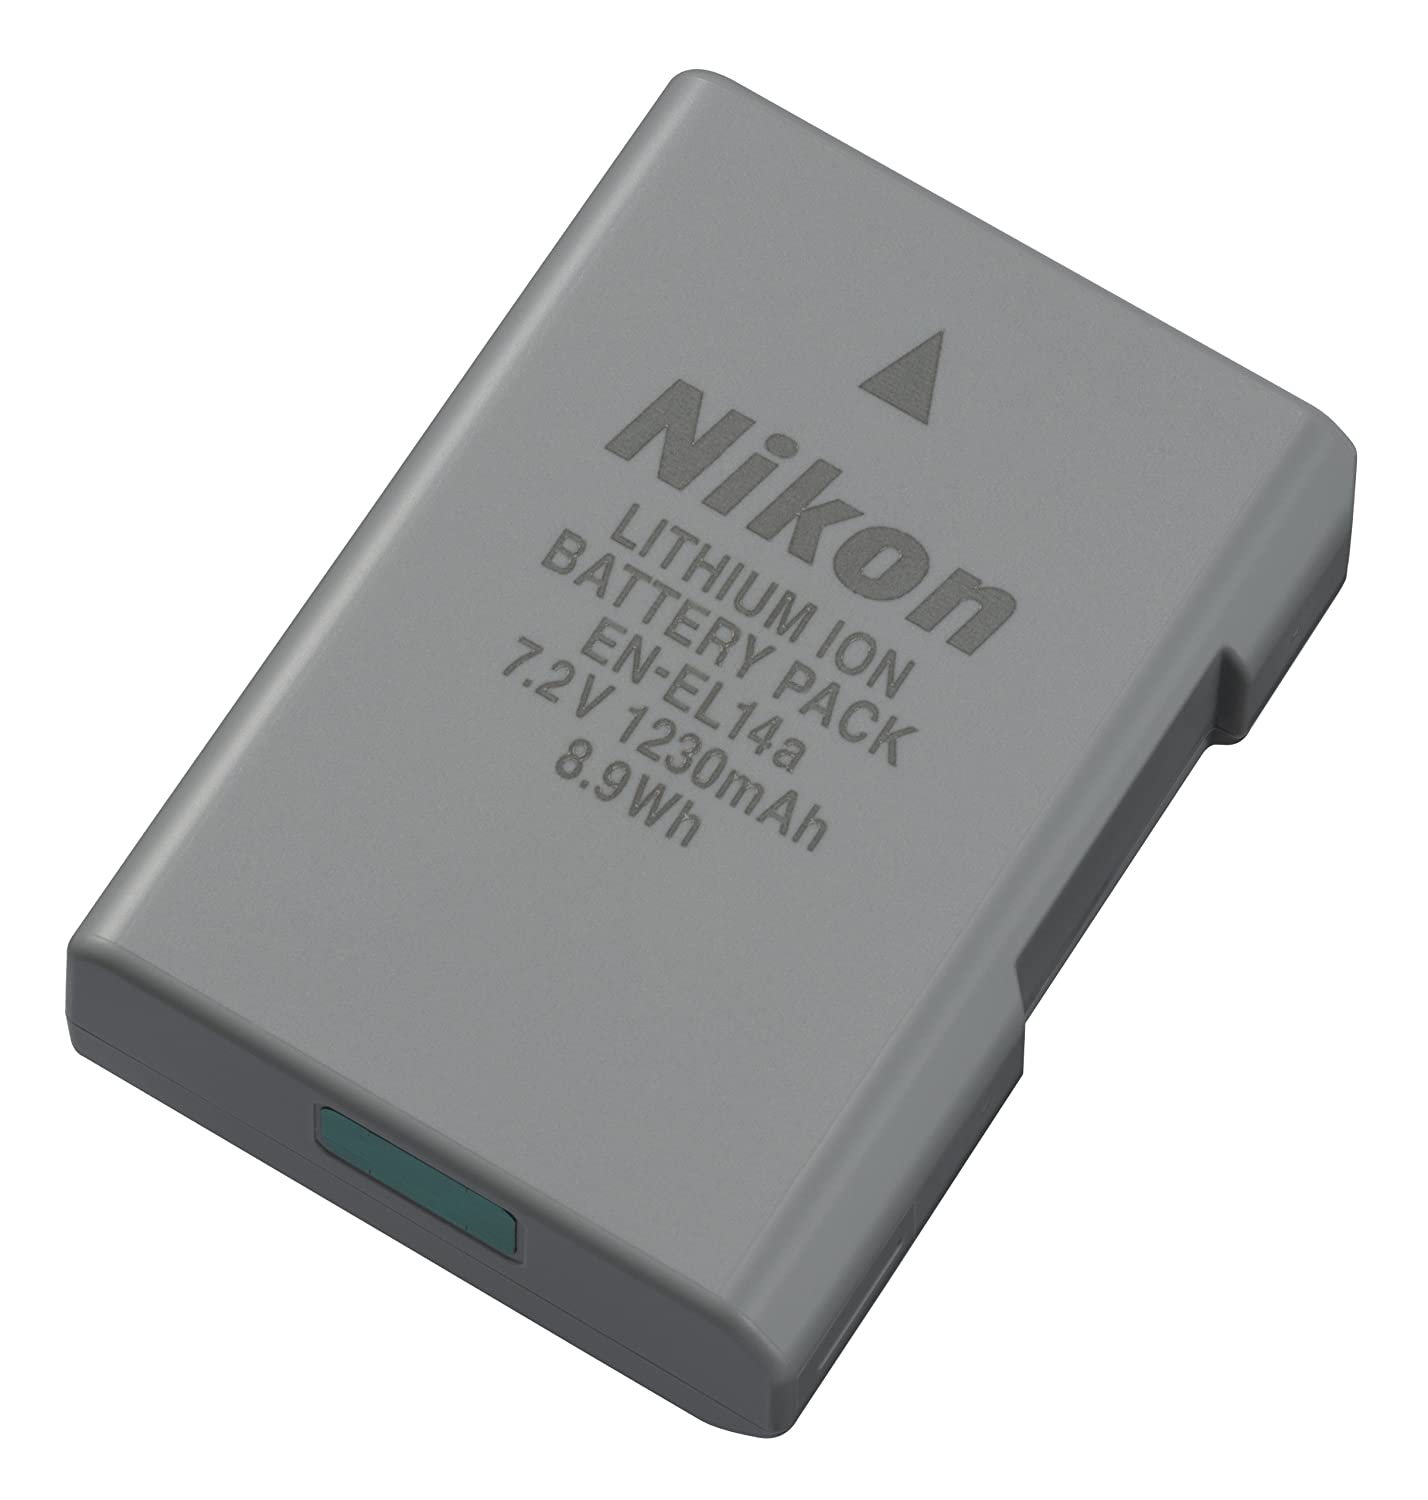 Nikon 27126 EN-EL 14A Rechargeable Li-Ion Battery